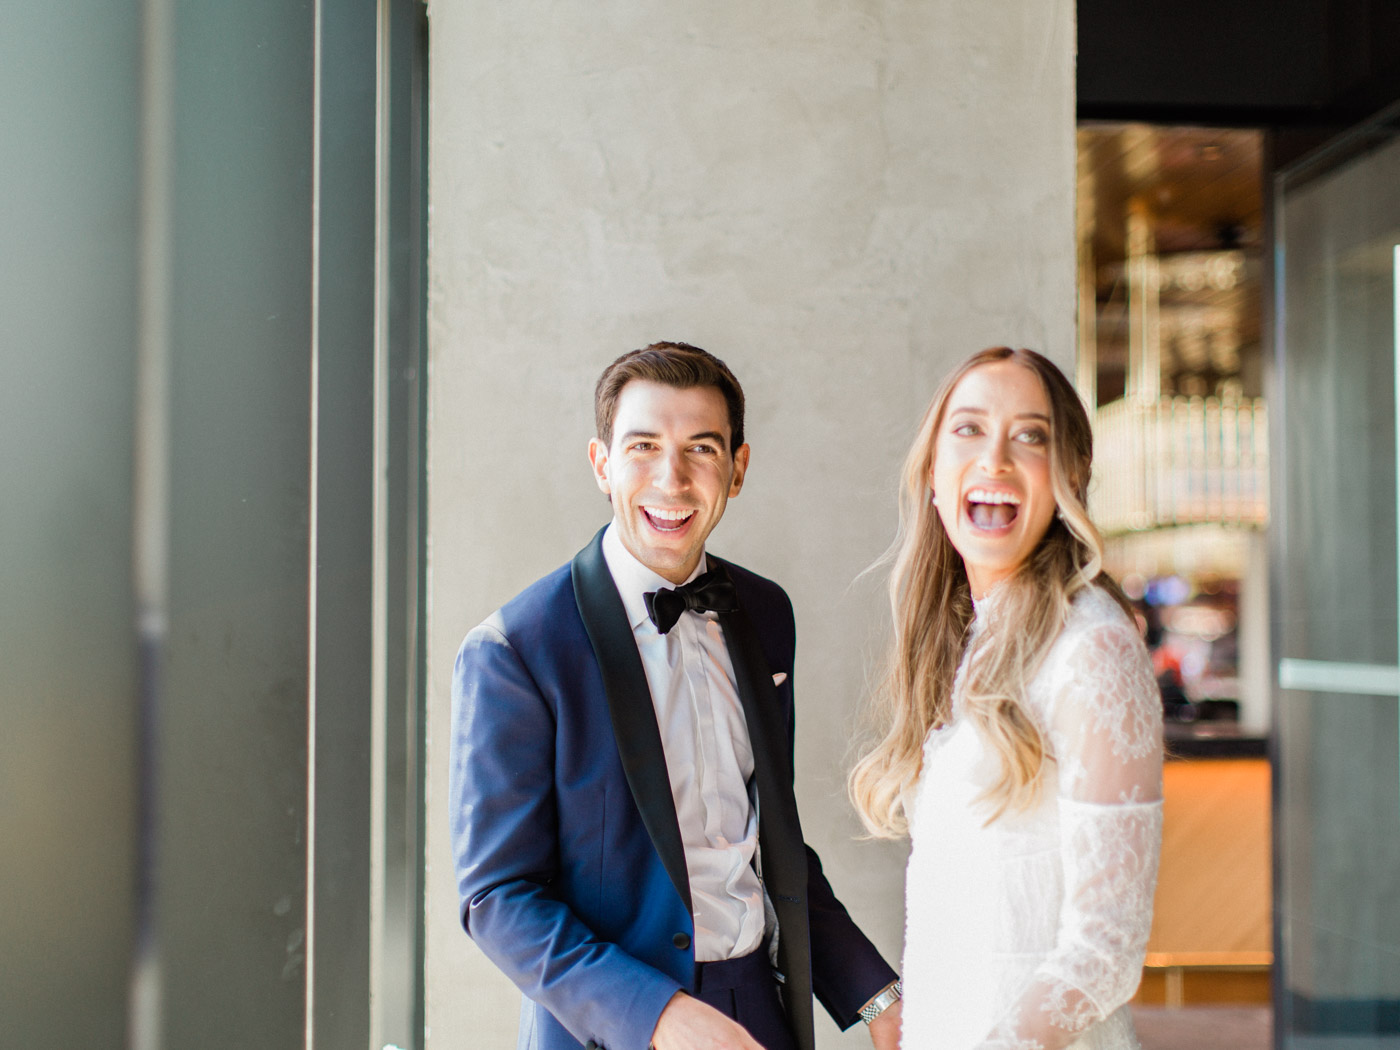 -Candid, natural first look between bride and groom at restaurant wedding Chez Lavelle.  Captured by Toronto wedding photographer Corynn Fowler Photography.